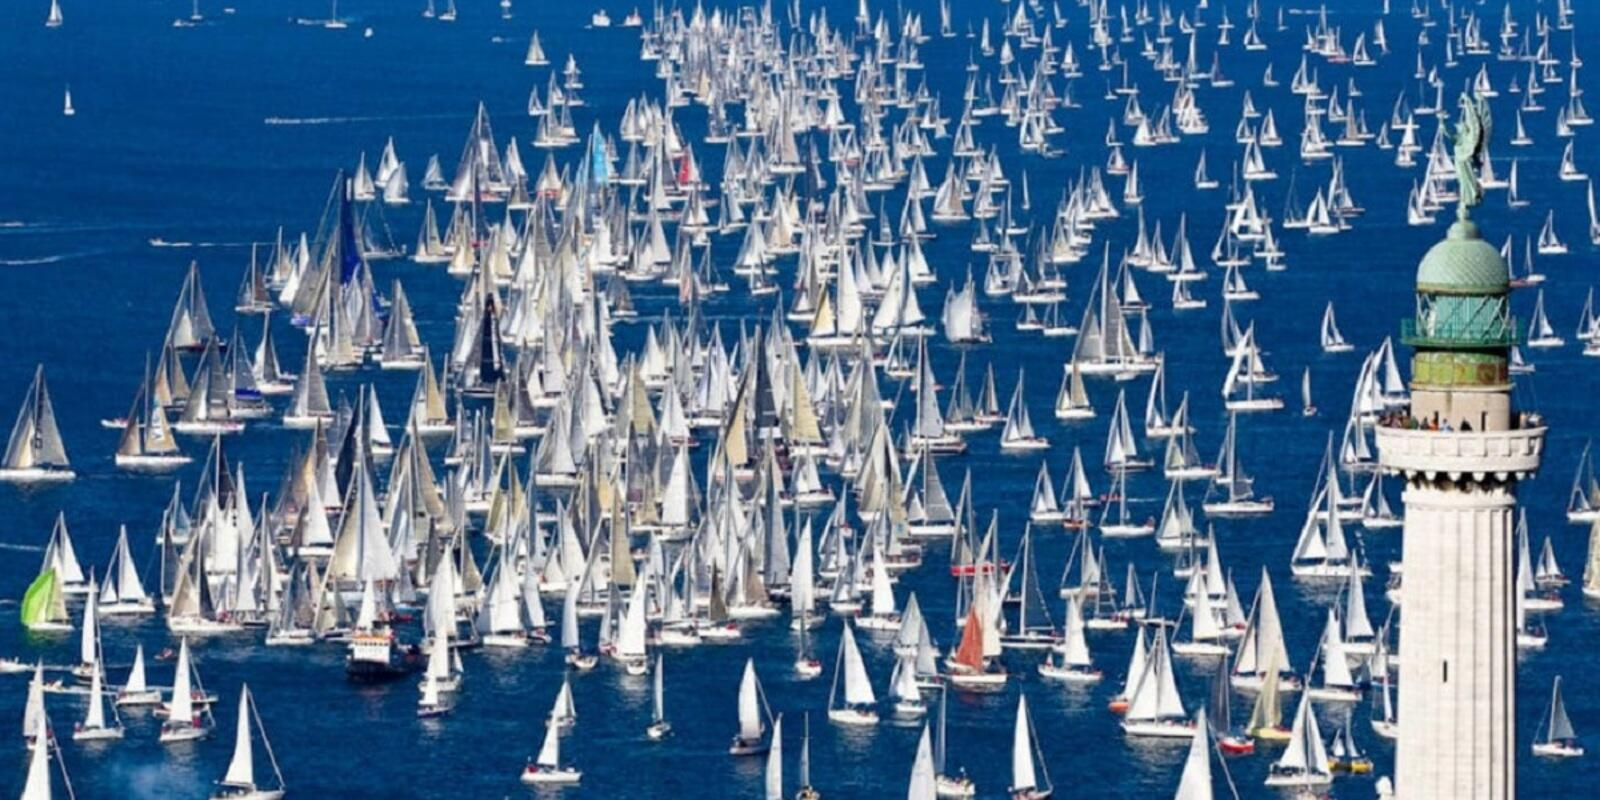 A weekend for those who love the sea on a sailing boat at the Barcolana, the most famous regatta in the world